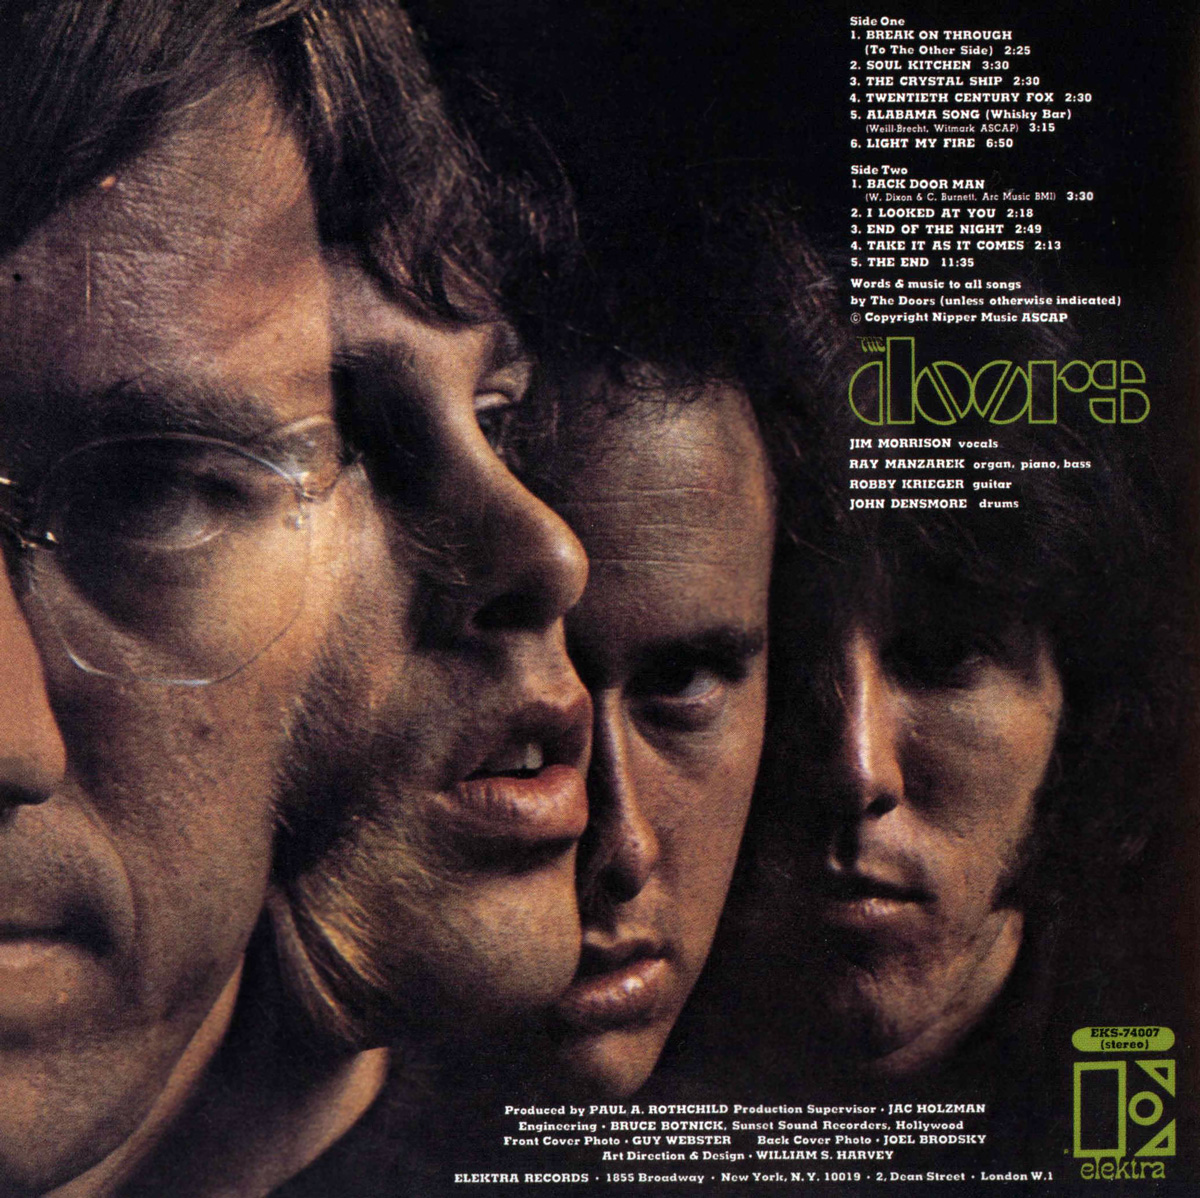 Outtake Photos Of The Doors 1967 Debut Album Cover & Outtake Photos Of The Doors Eponymous 1967 Album Cover pezcame.com